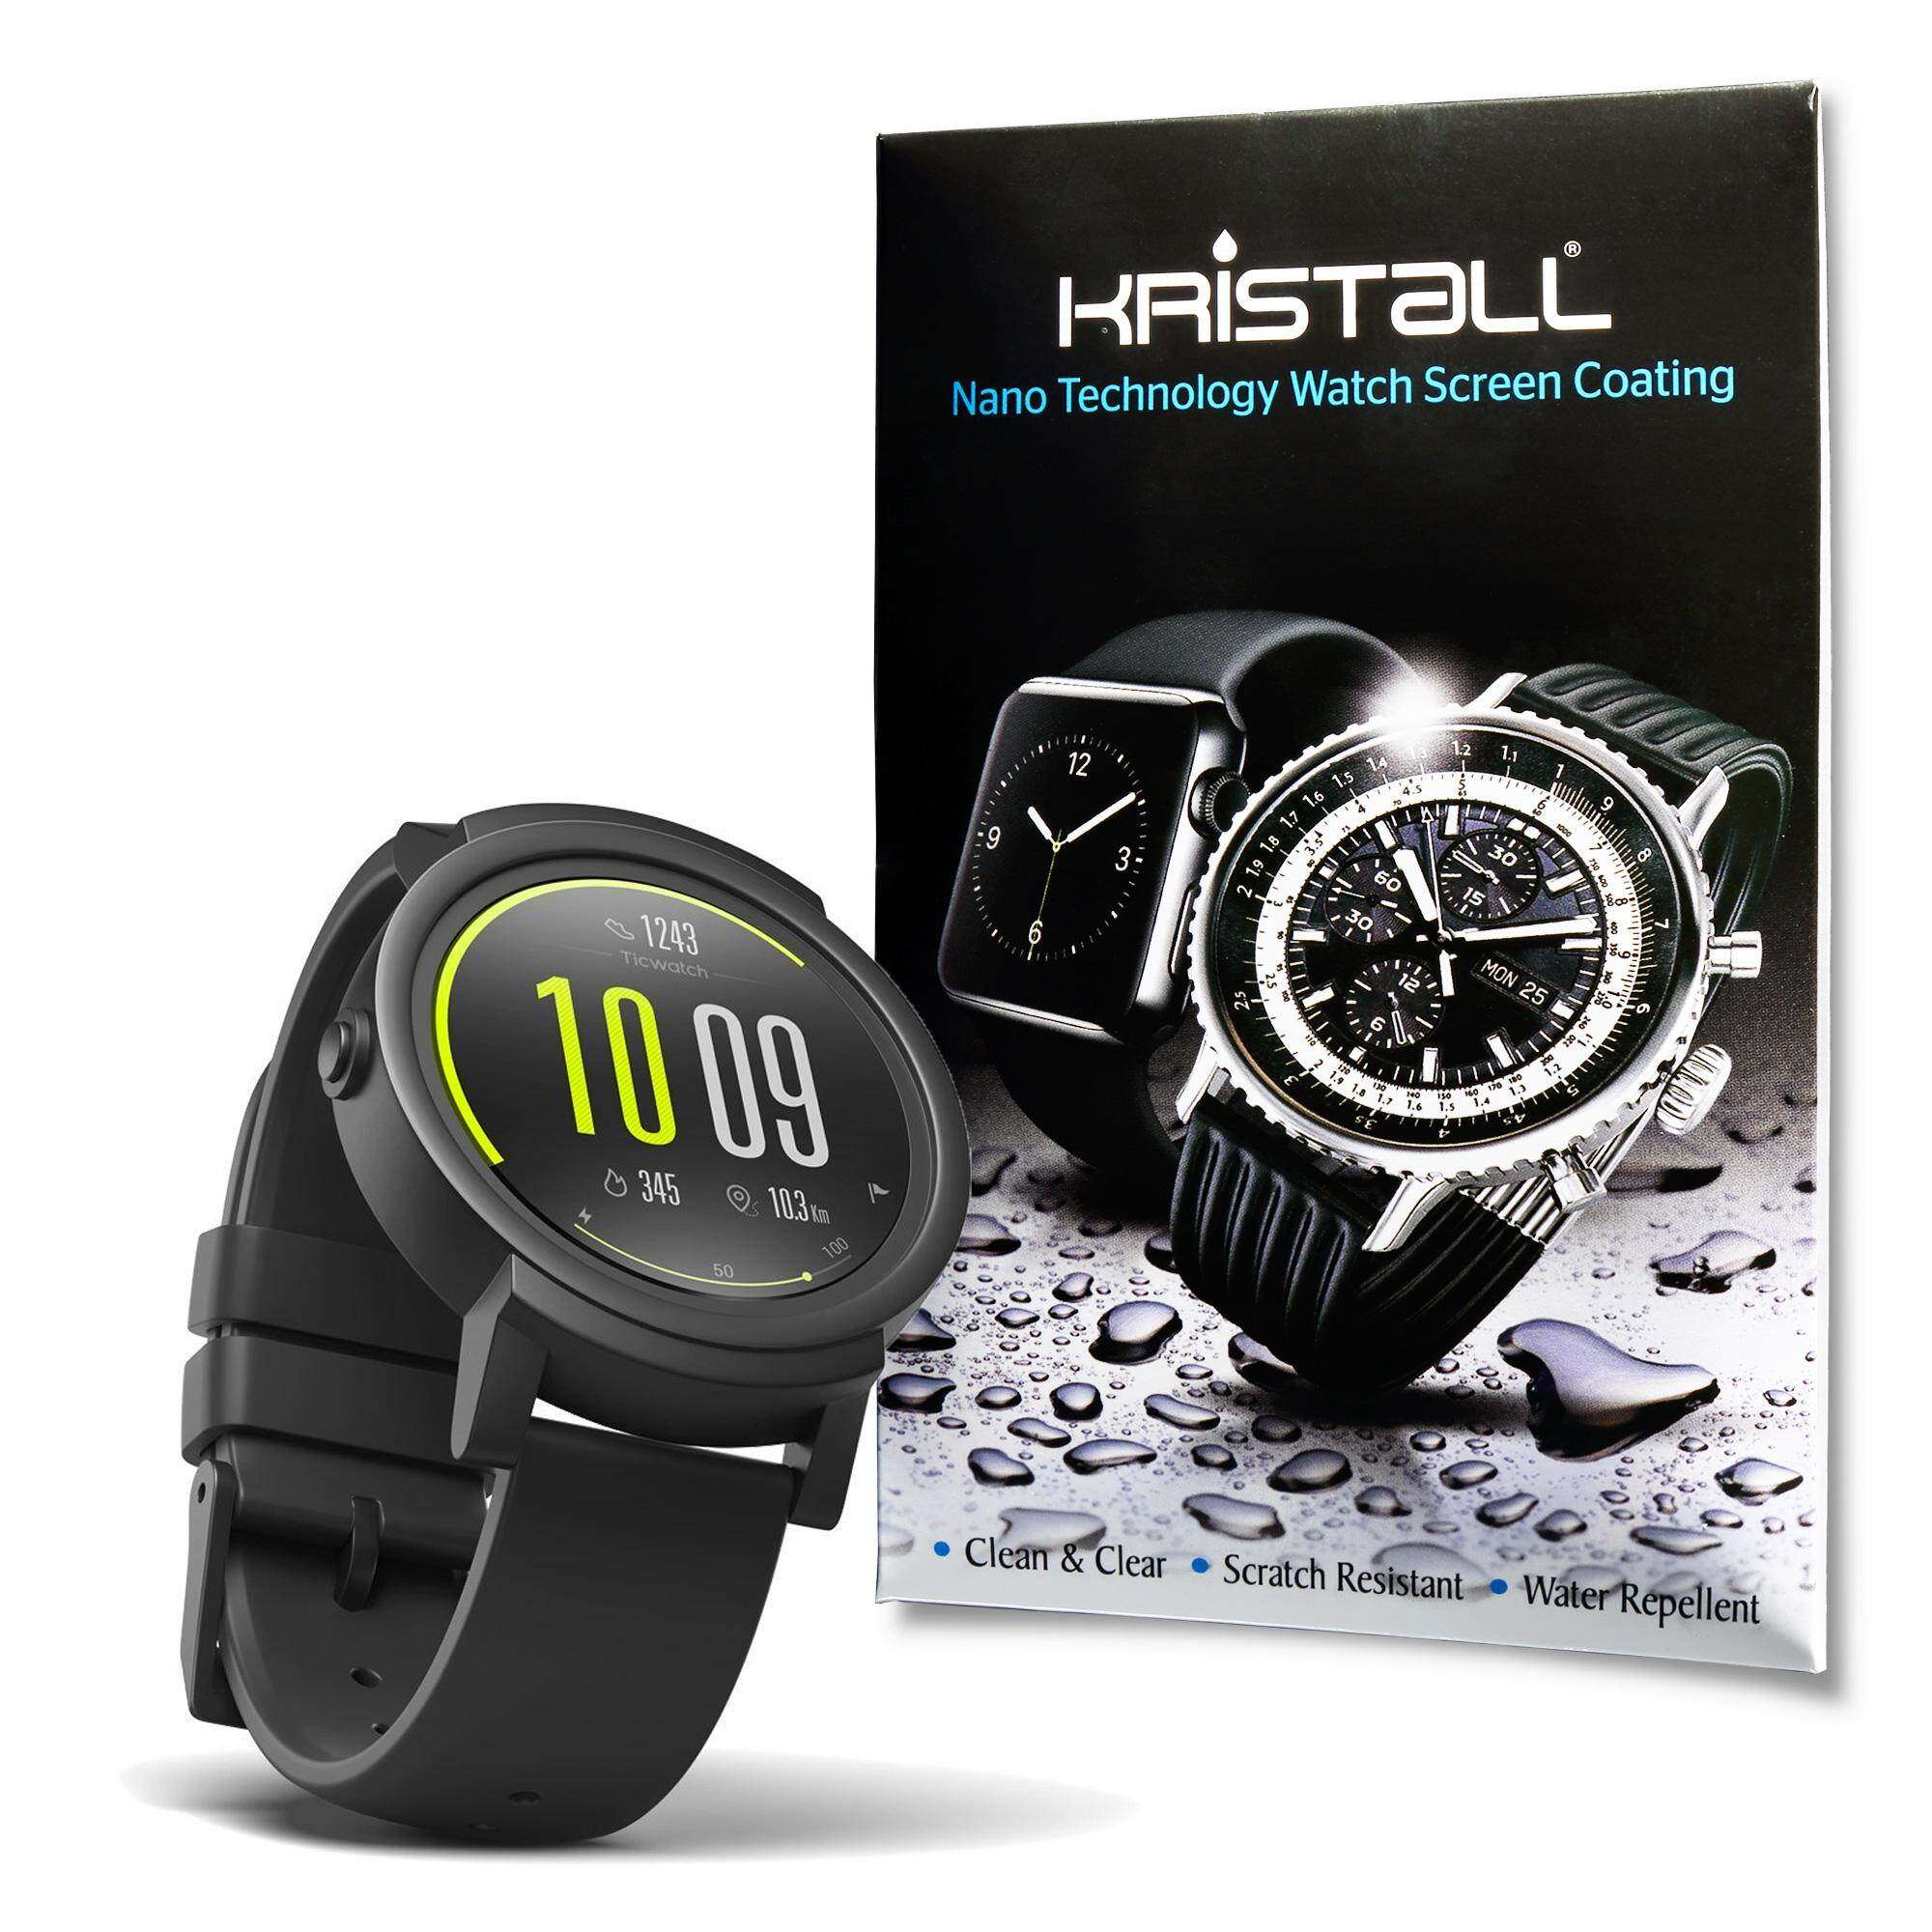 Ticwatch E Screen Protector - Kristall® 9H Hardness Full Coverage Liquid Nano Coating Screen Protector for Smartwatches (Bubble-FREE Screen Protector, EASY to Apply, Edge-to-Edge Protection)